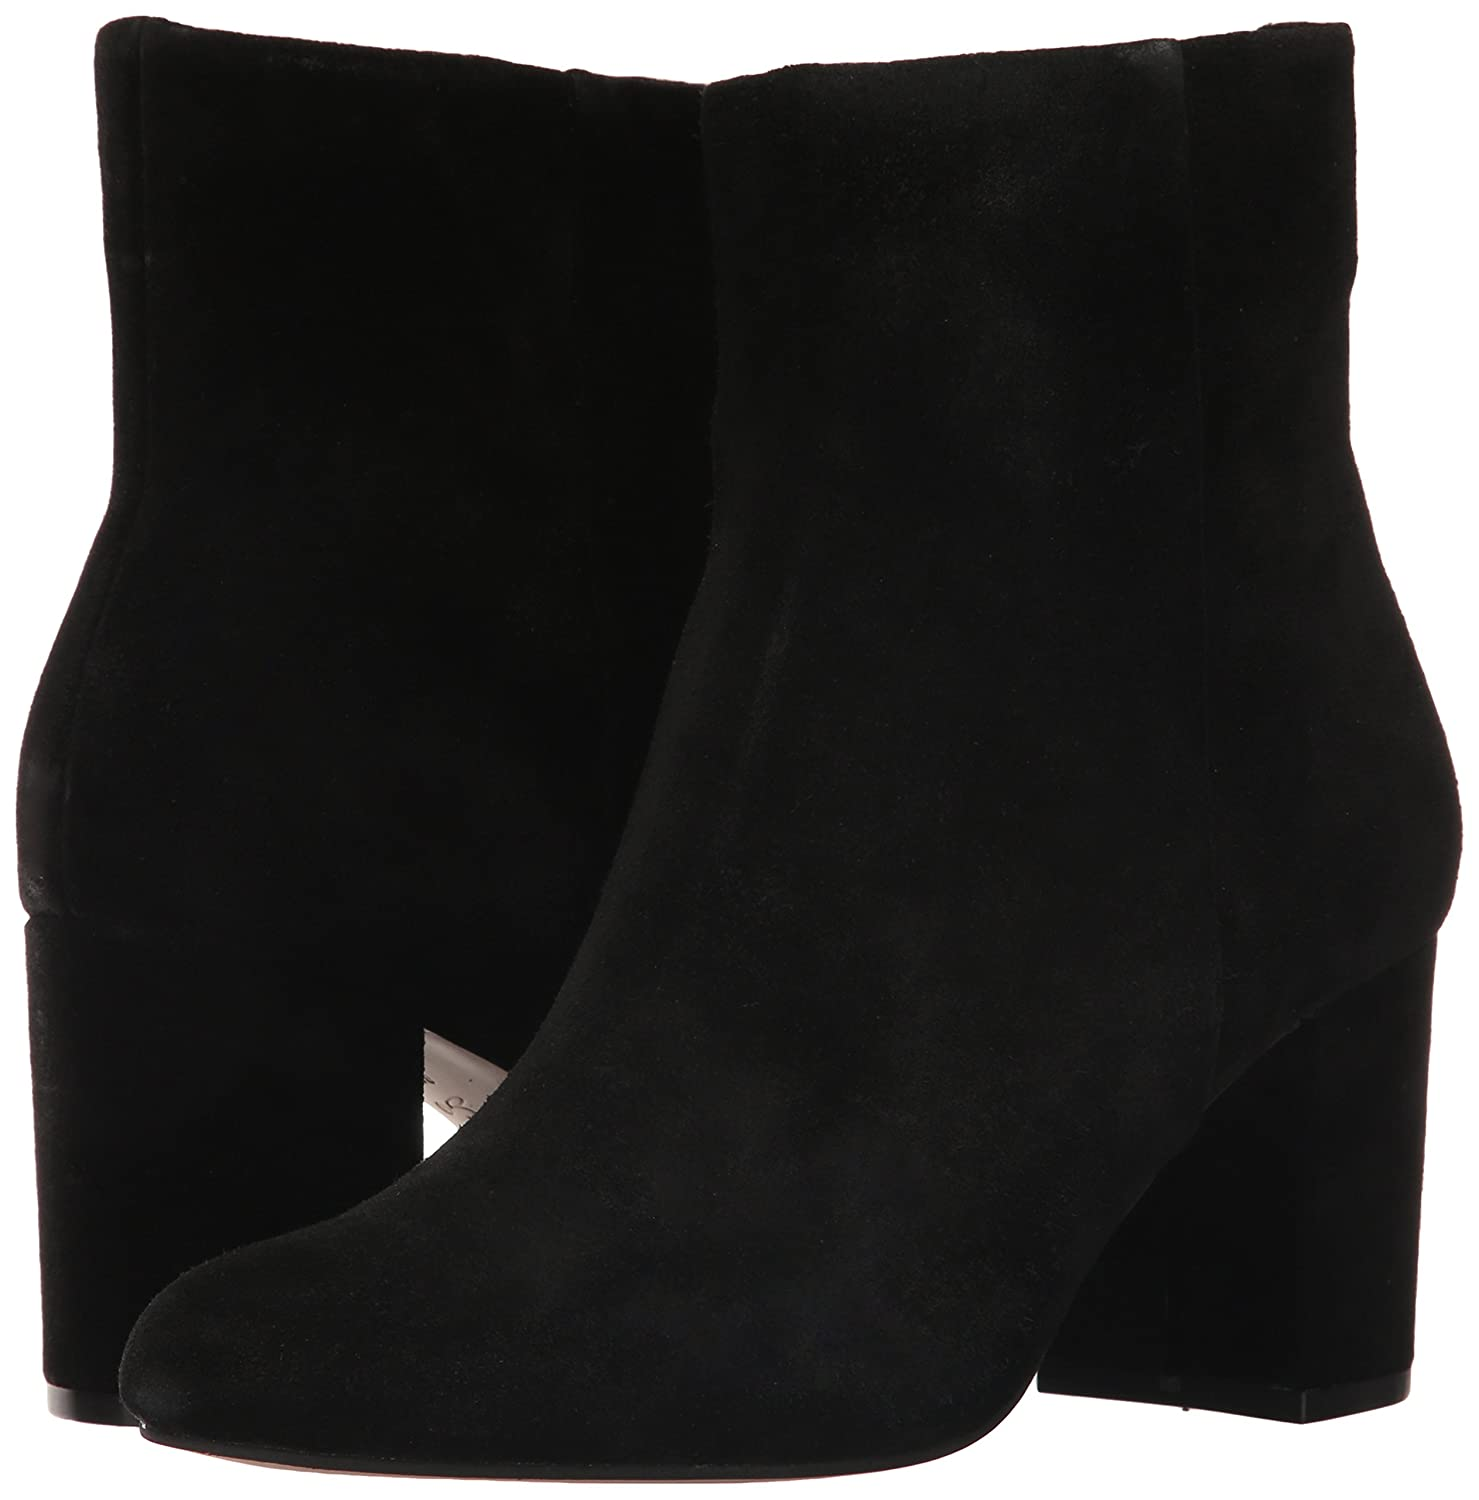 Opportunity Shoes - Corso Como Women's Perfecto Ankle Boot B06WD8CN43 9 B(M) US|Black Split Suede